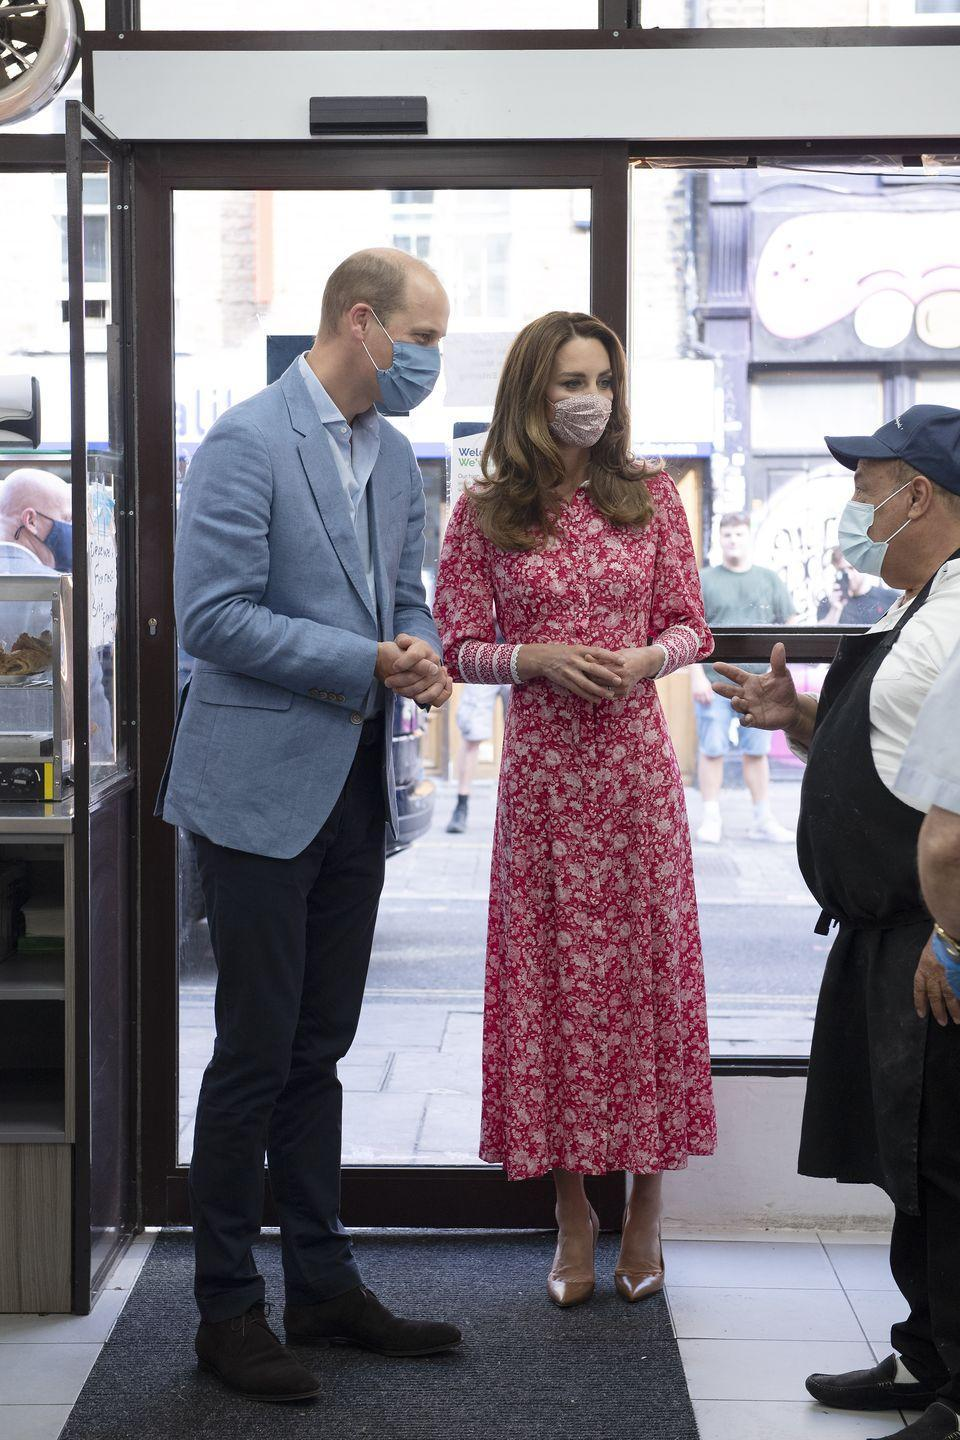 Kate Middleton Steps Out in $707 Red Floral Dress and Mask for Surprise London Event